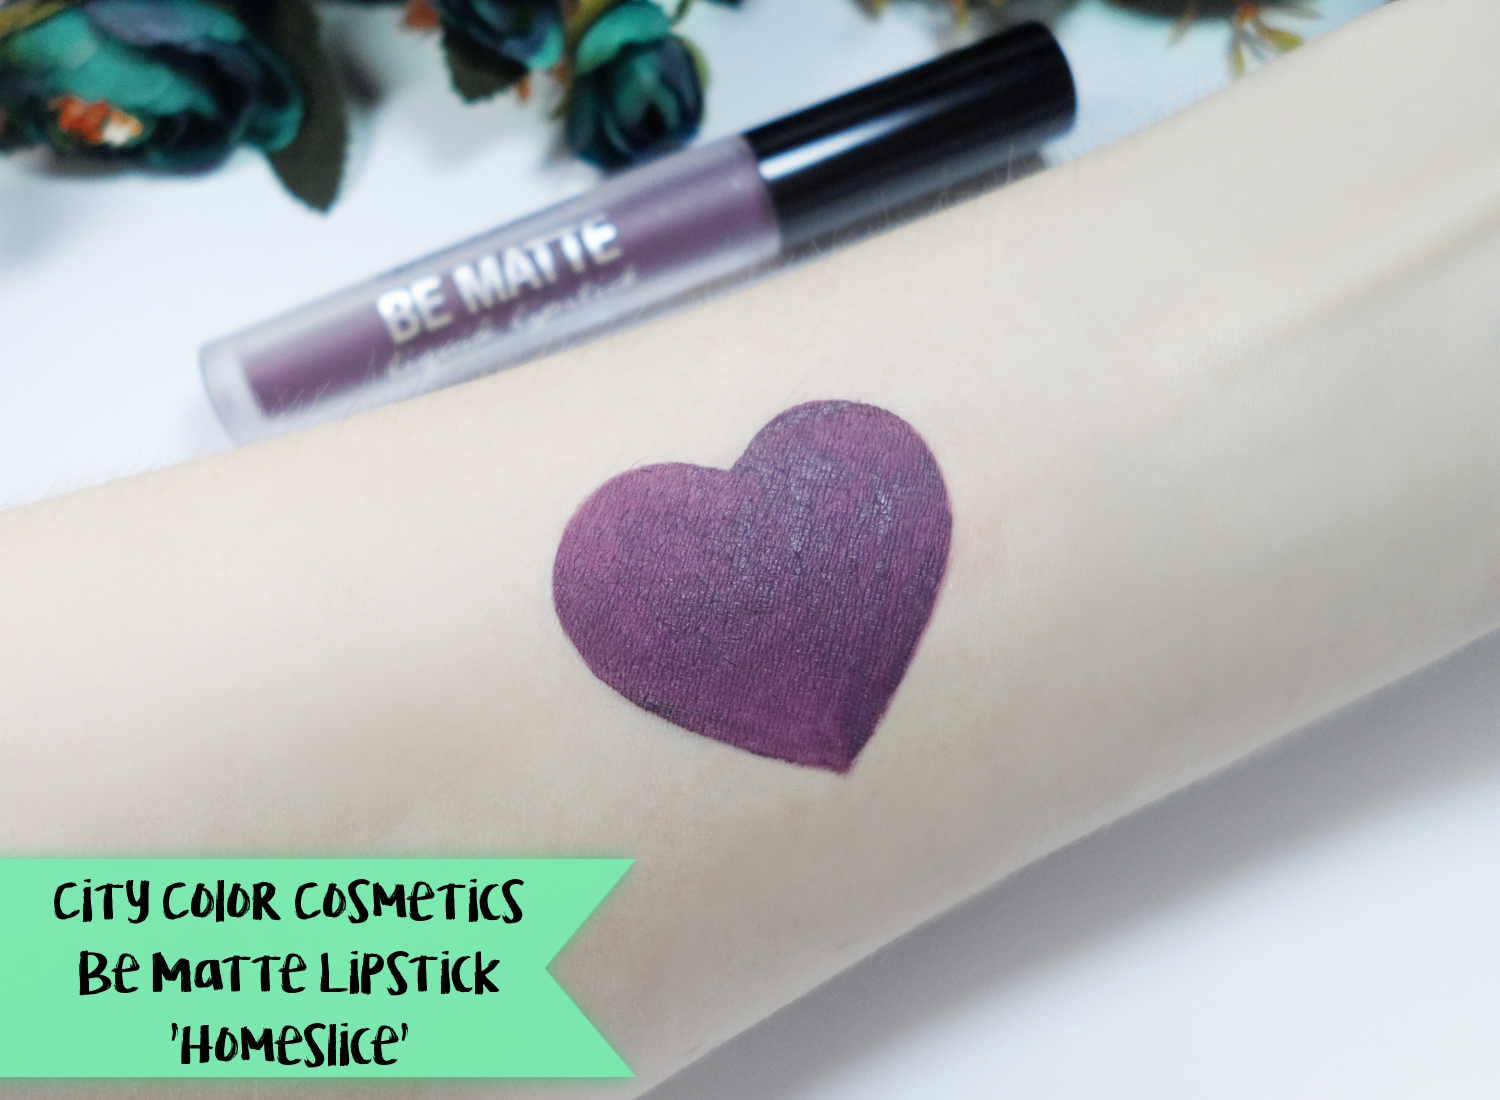 matte dark purple lipstick how to january girl beauty makeup blogger